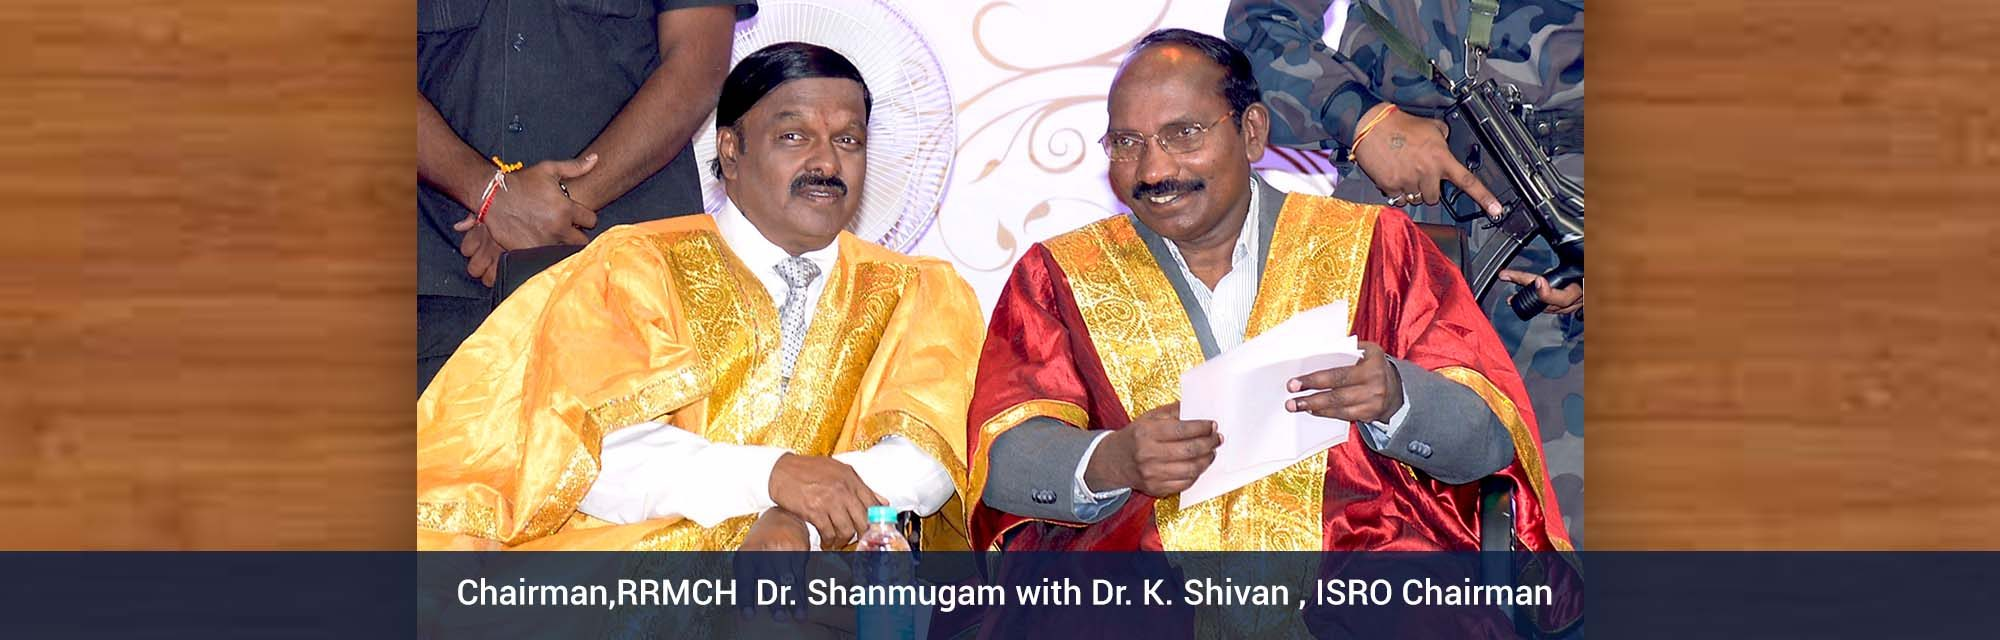 Chairman-RRMCH-with-ISRO-Chairman-3